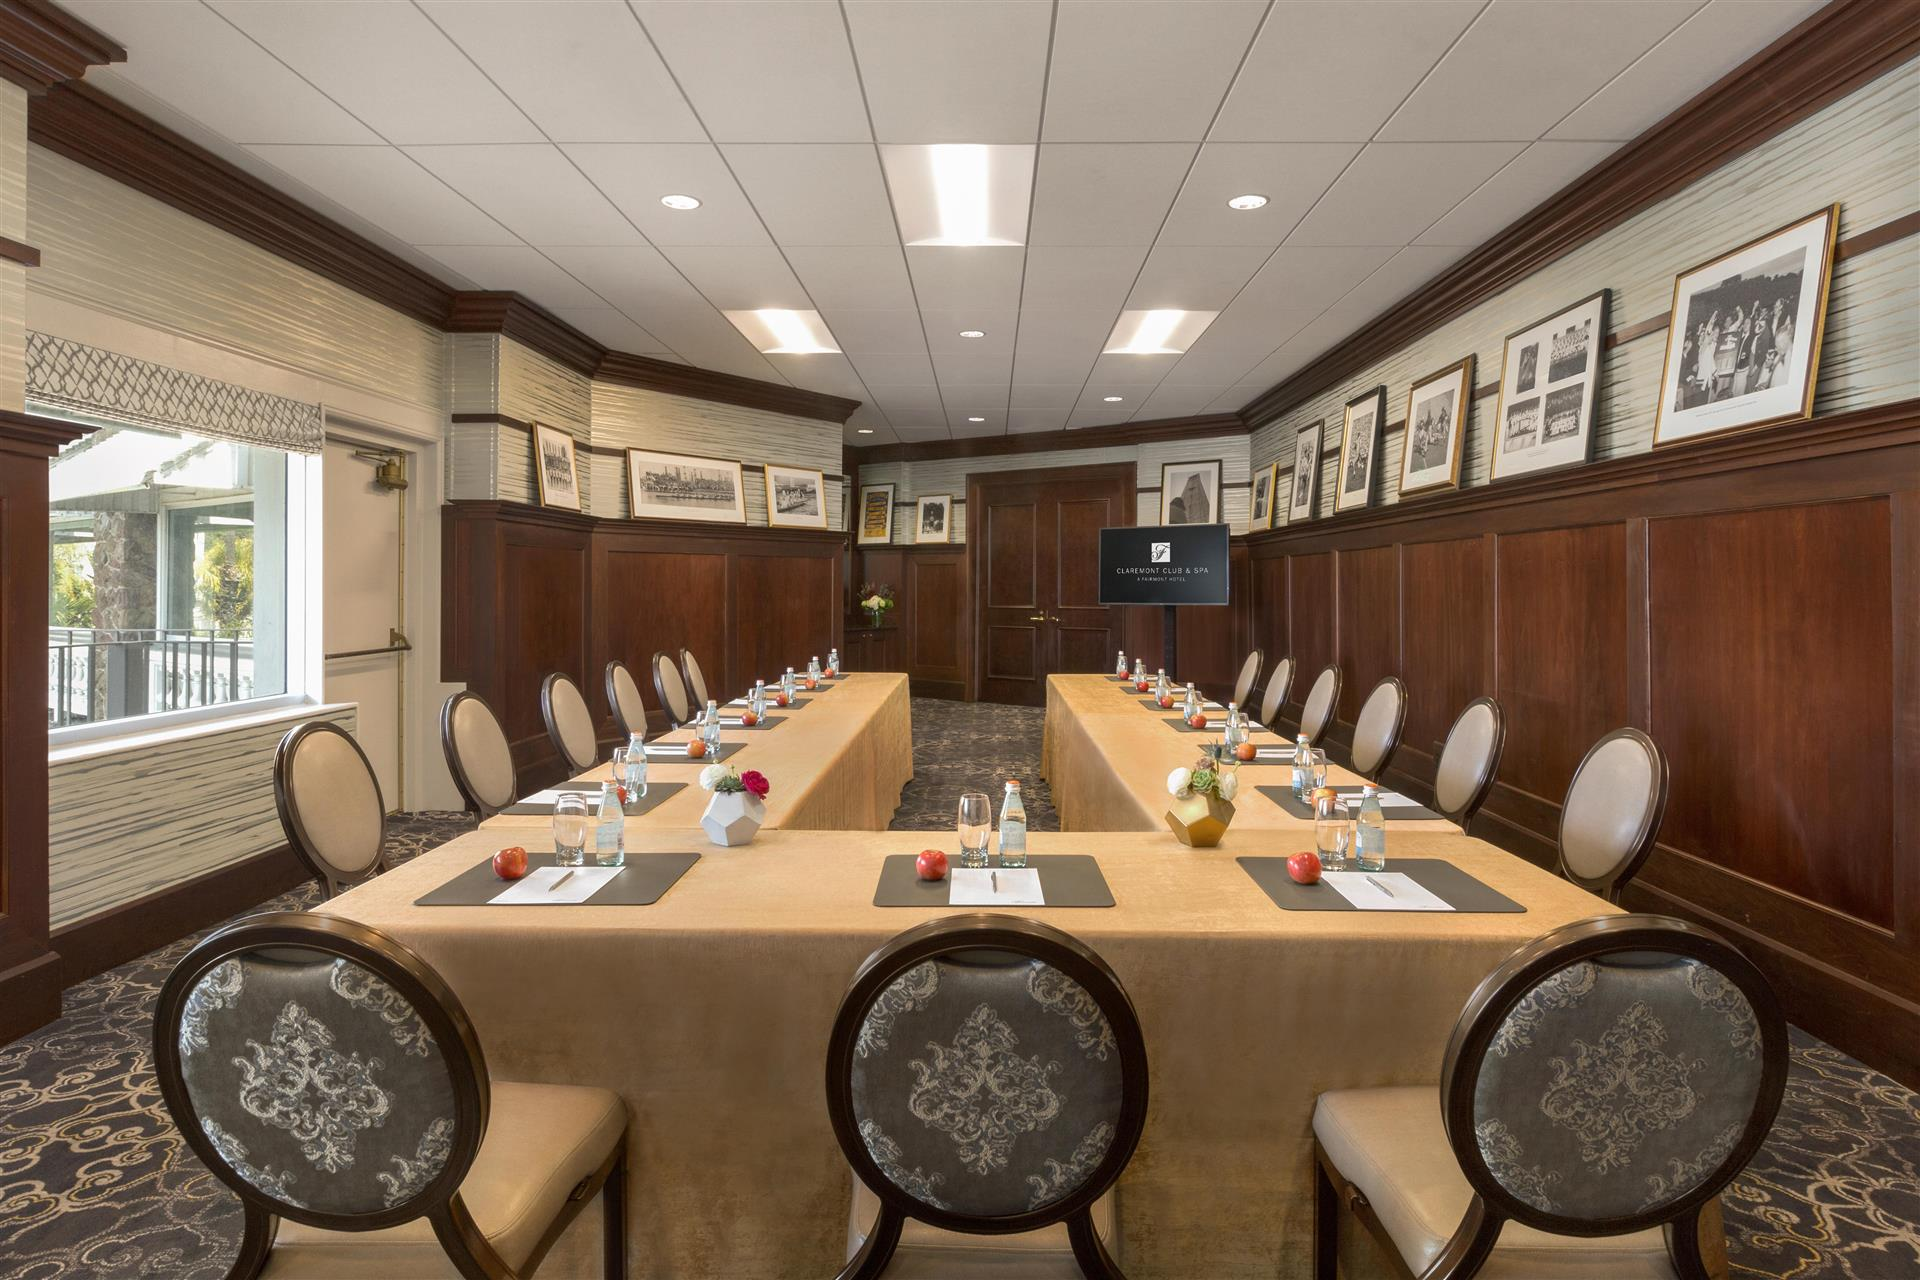 Alumni Room event space at Claremont Hotel Club & Spa in Bay Area